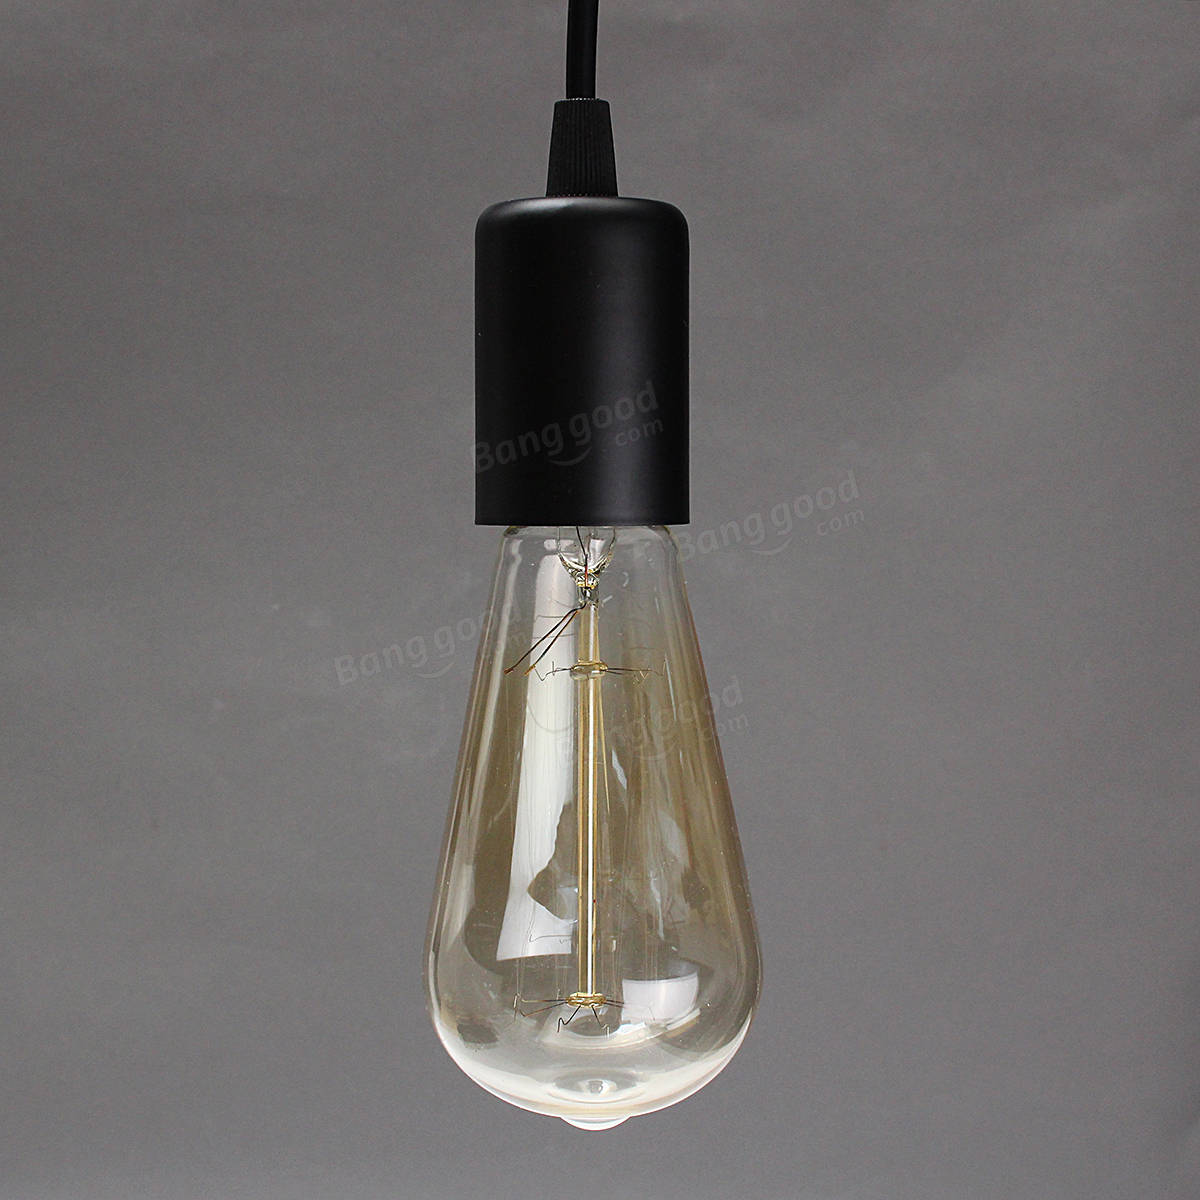 E27 Single Head Home Ceiling Pendant Lamp Light Bulb